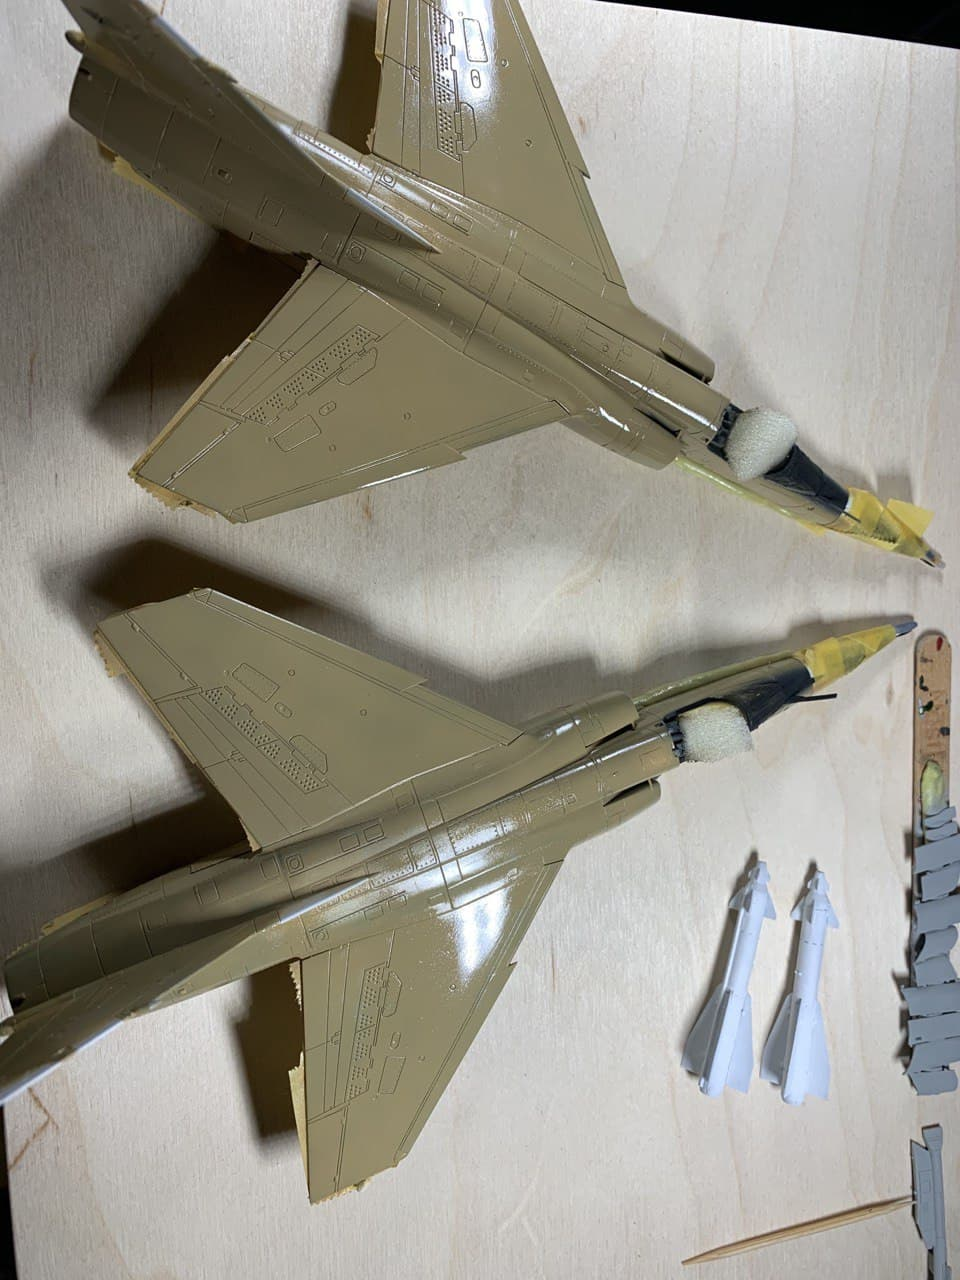 Mirage F1EQ5 avec Kh29L - Irak - Special Hobby + Reskit + Yahu 1/72 - Page 2 Photo258